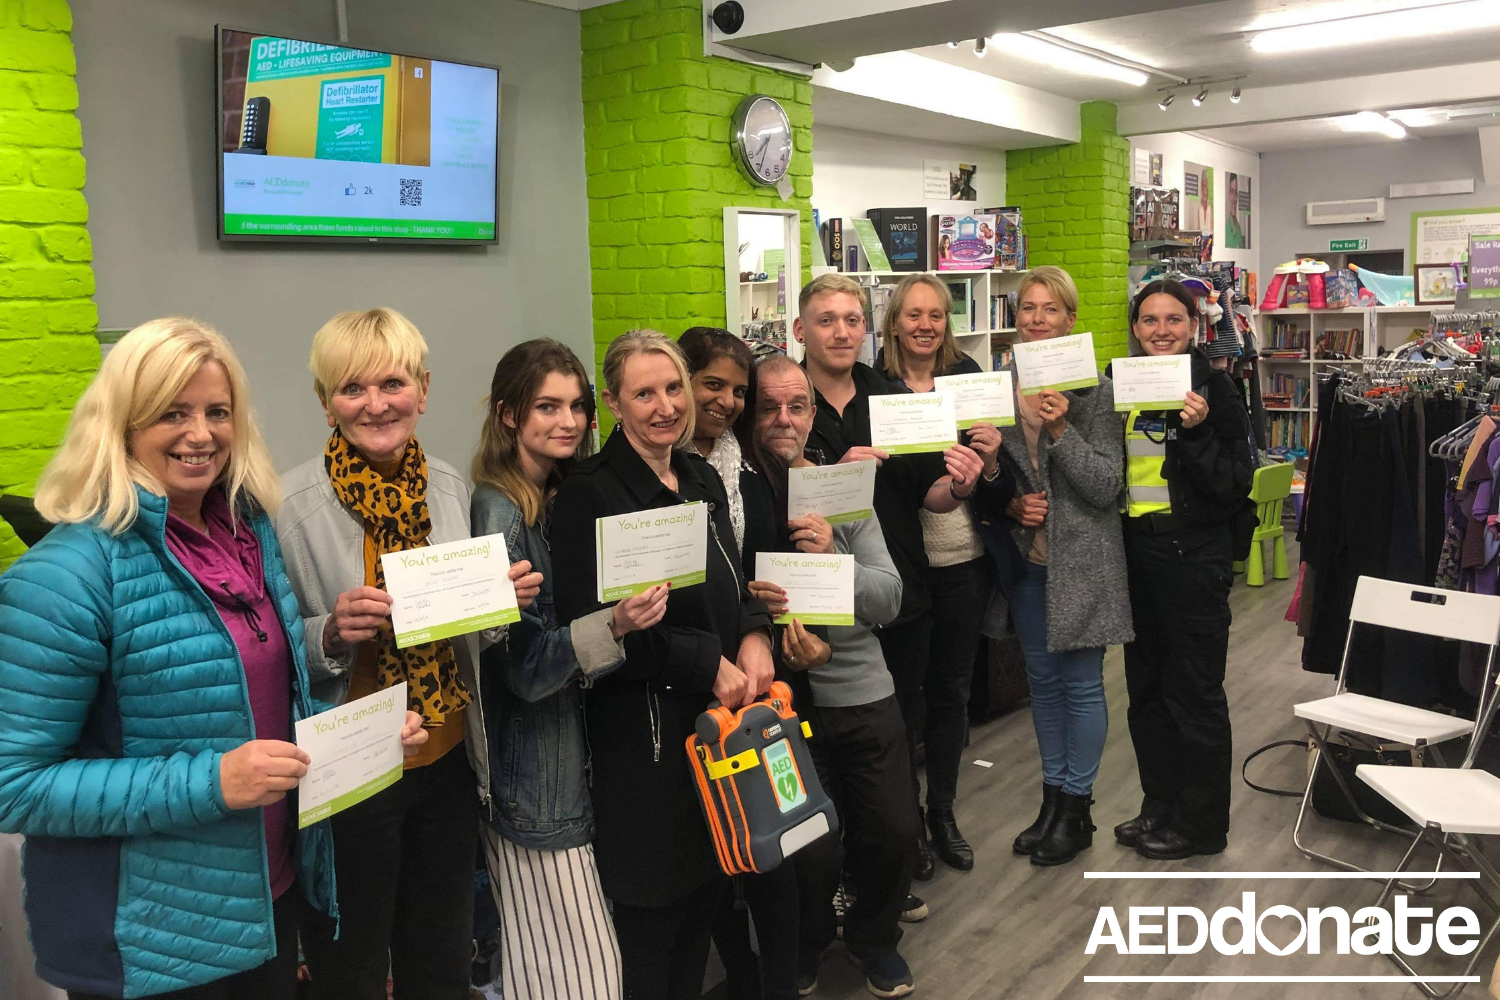 Defibrillator awareness session at AEDdonate Charity Shop